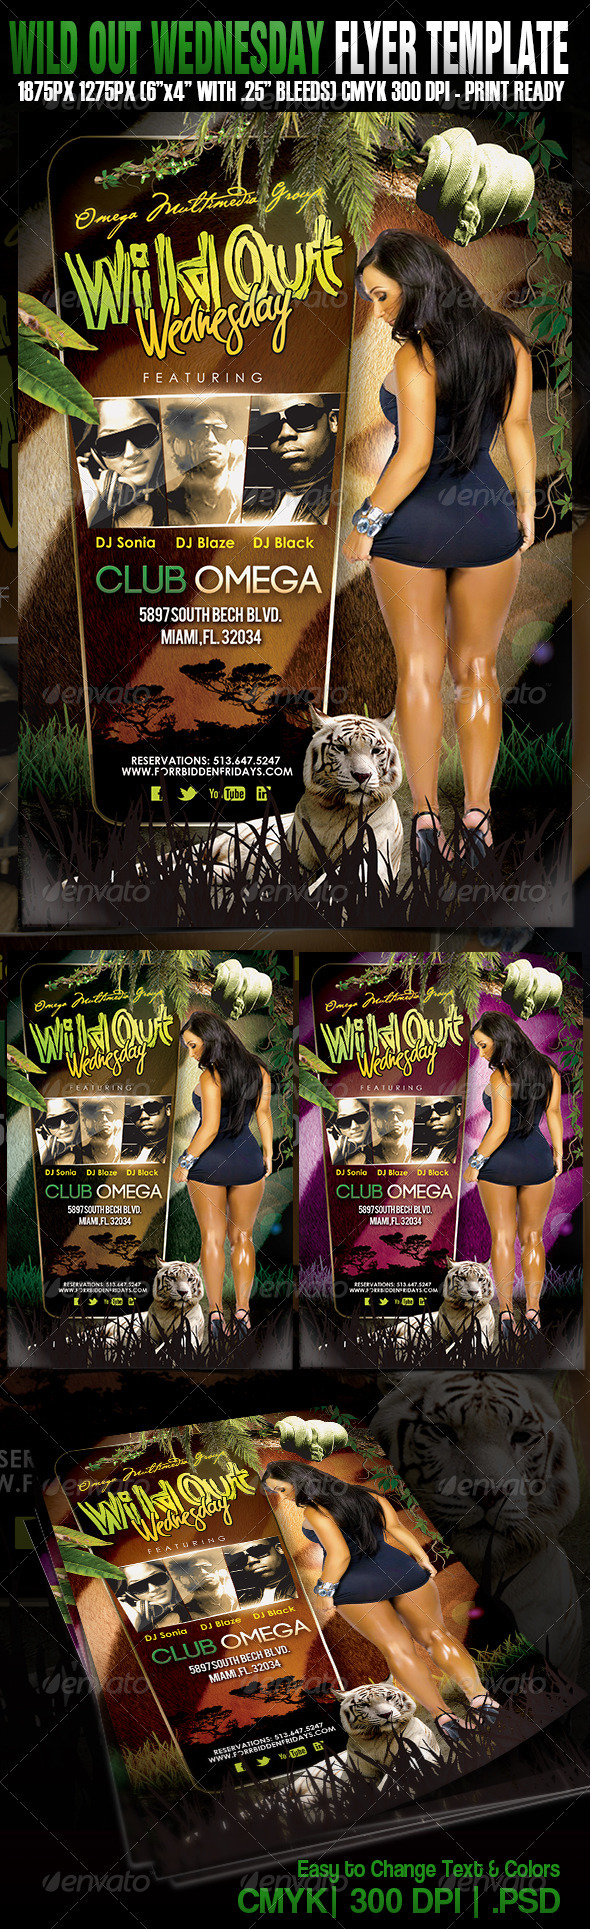 GraphicRiver Wildout Wednesdays 3628870